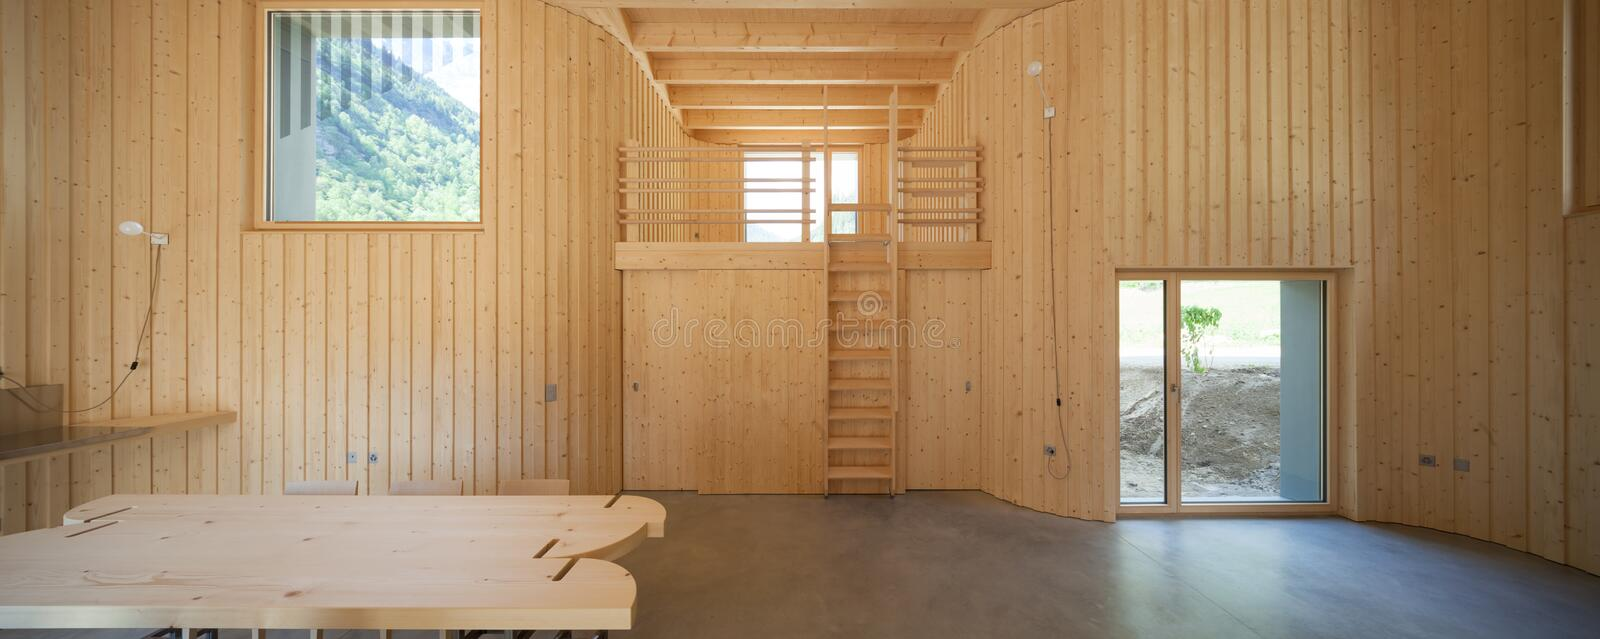 Interior of modrn wooden house. Modern house, wooden interiors open space. Project by Daniel Buren and Davide Macullo royalty free stock photo